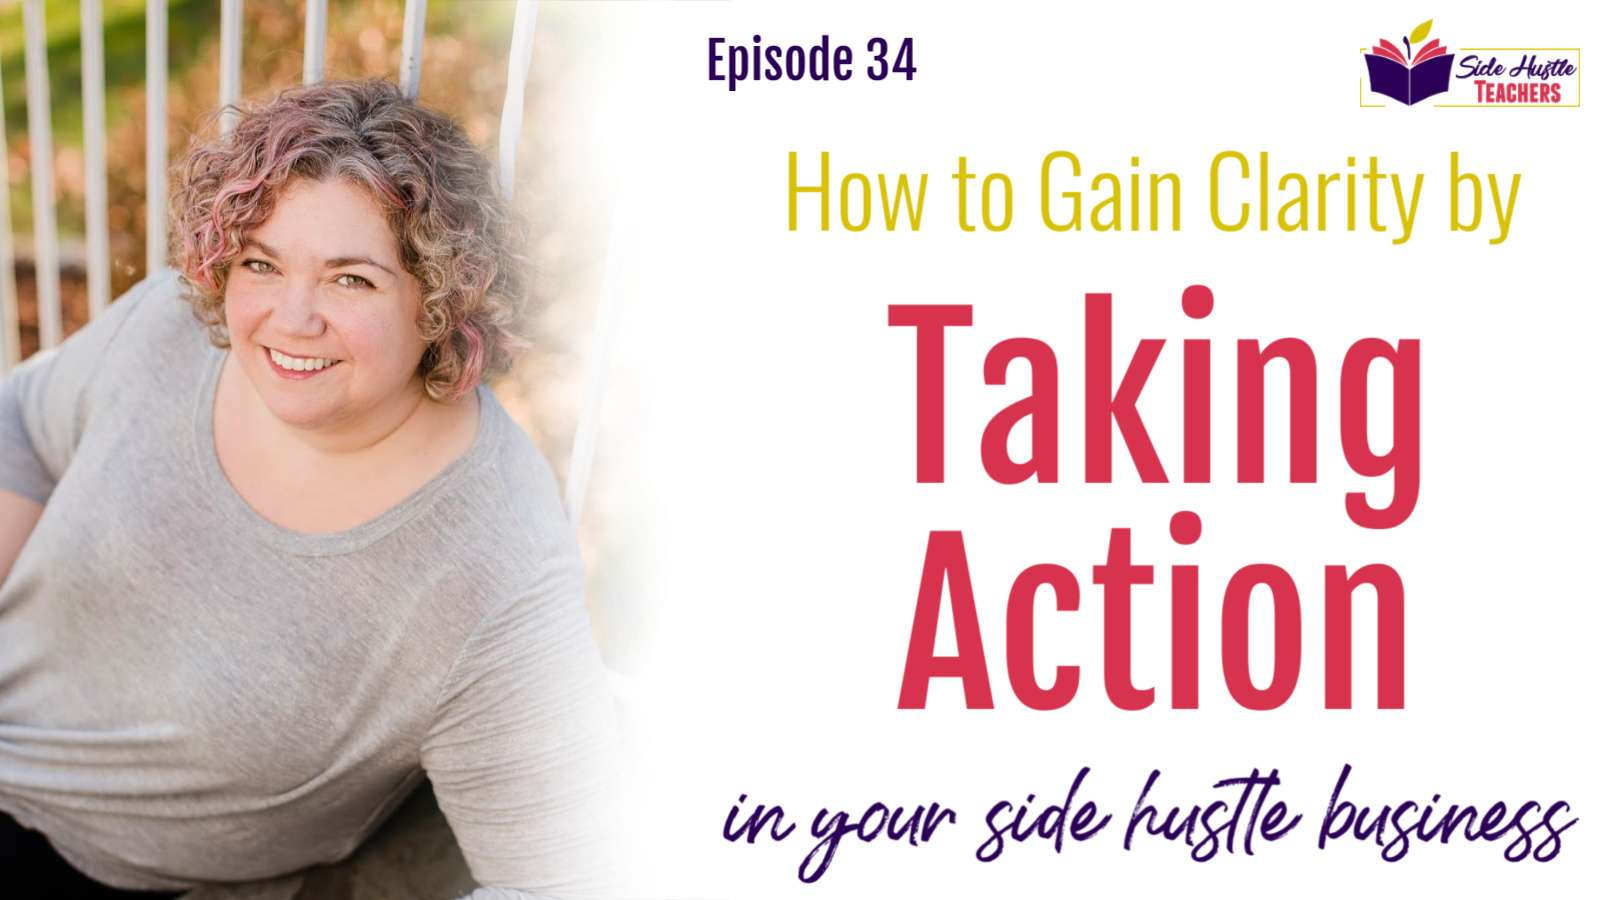 Anyone can think about starting a side hustle business, but the only way to be successful at it is by taking action!